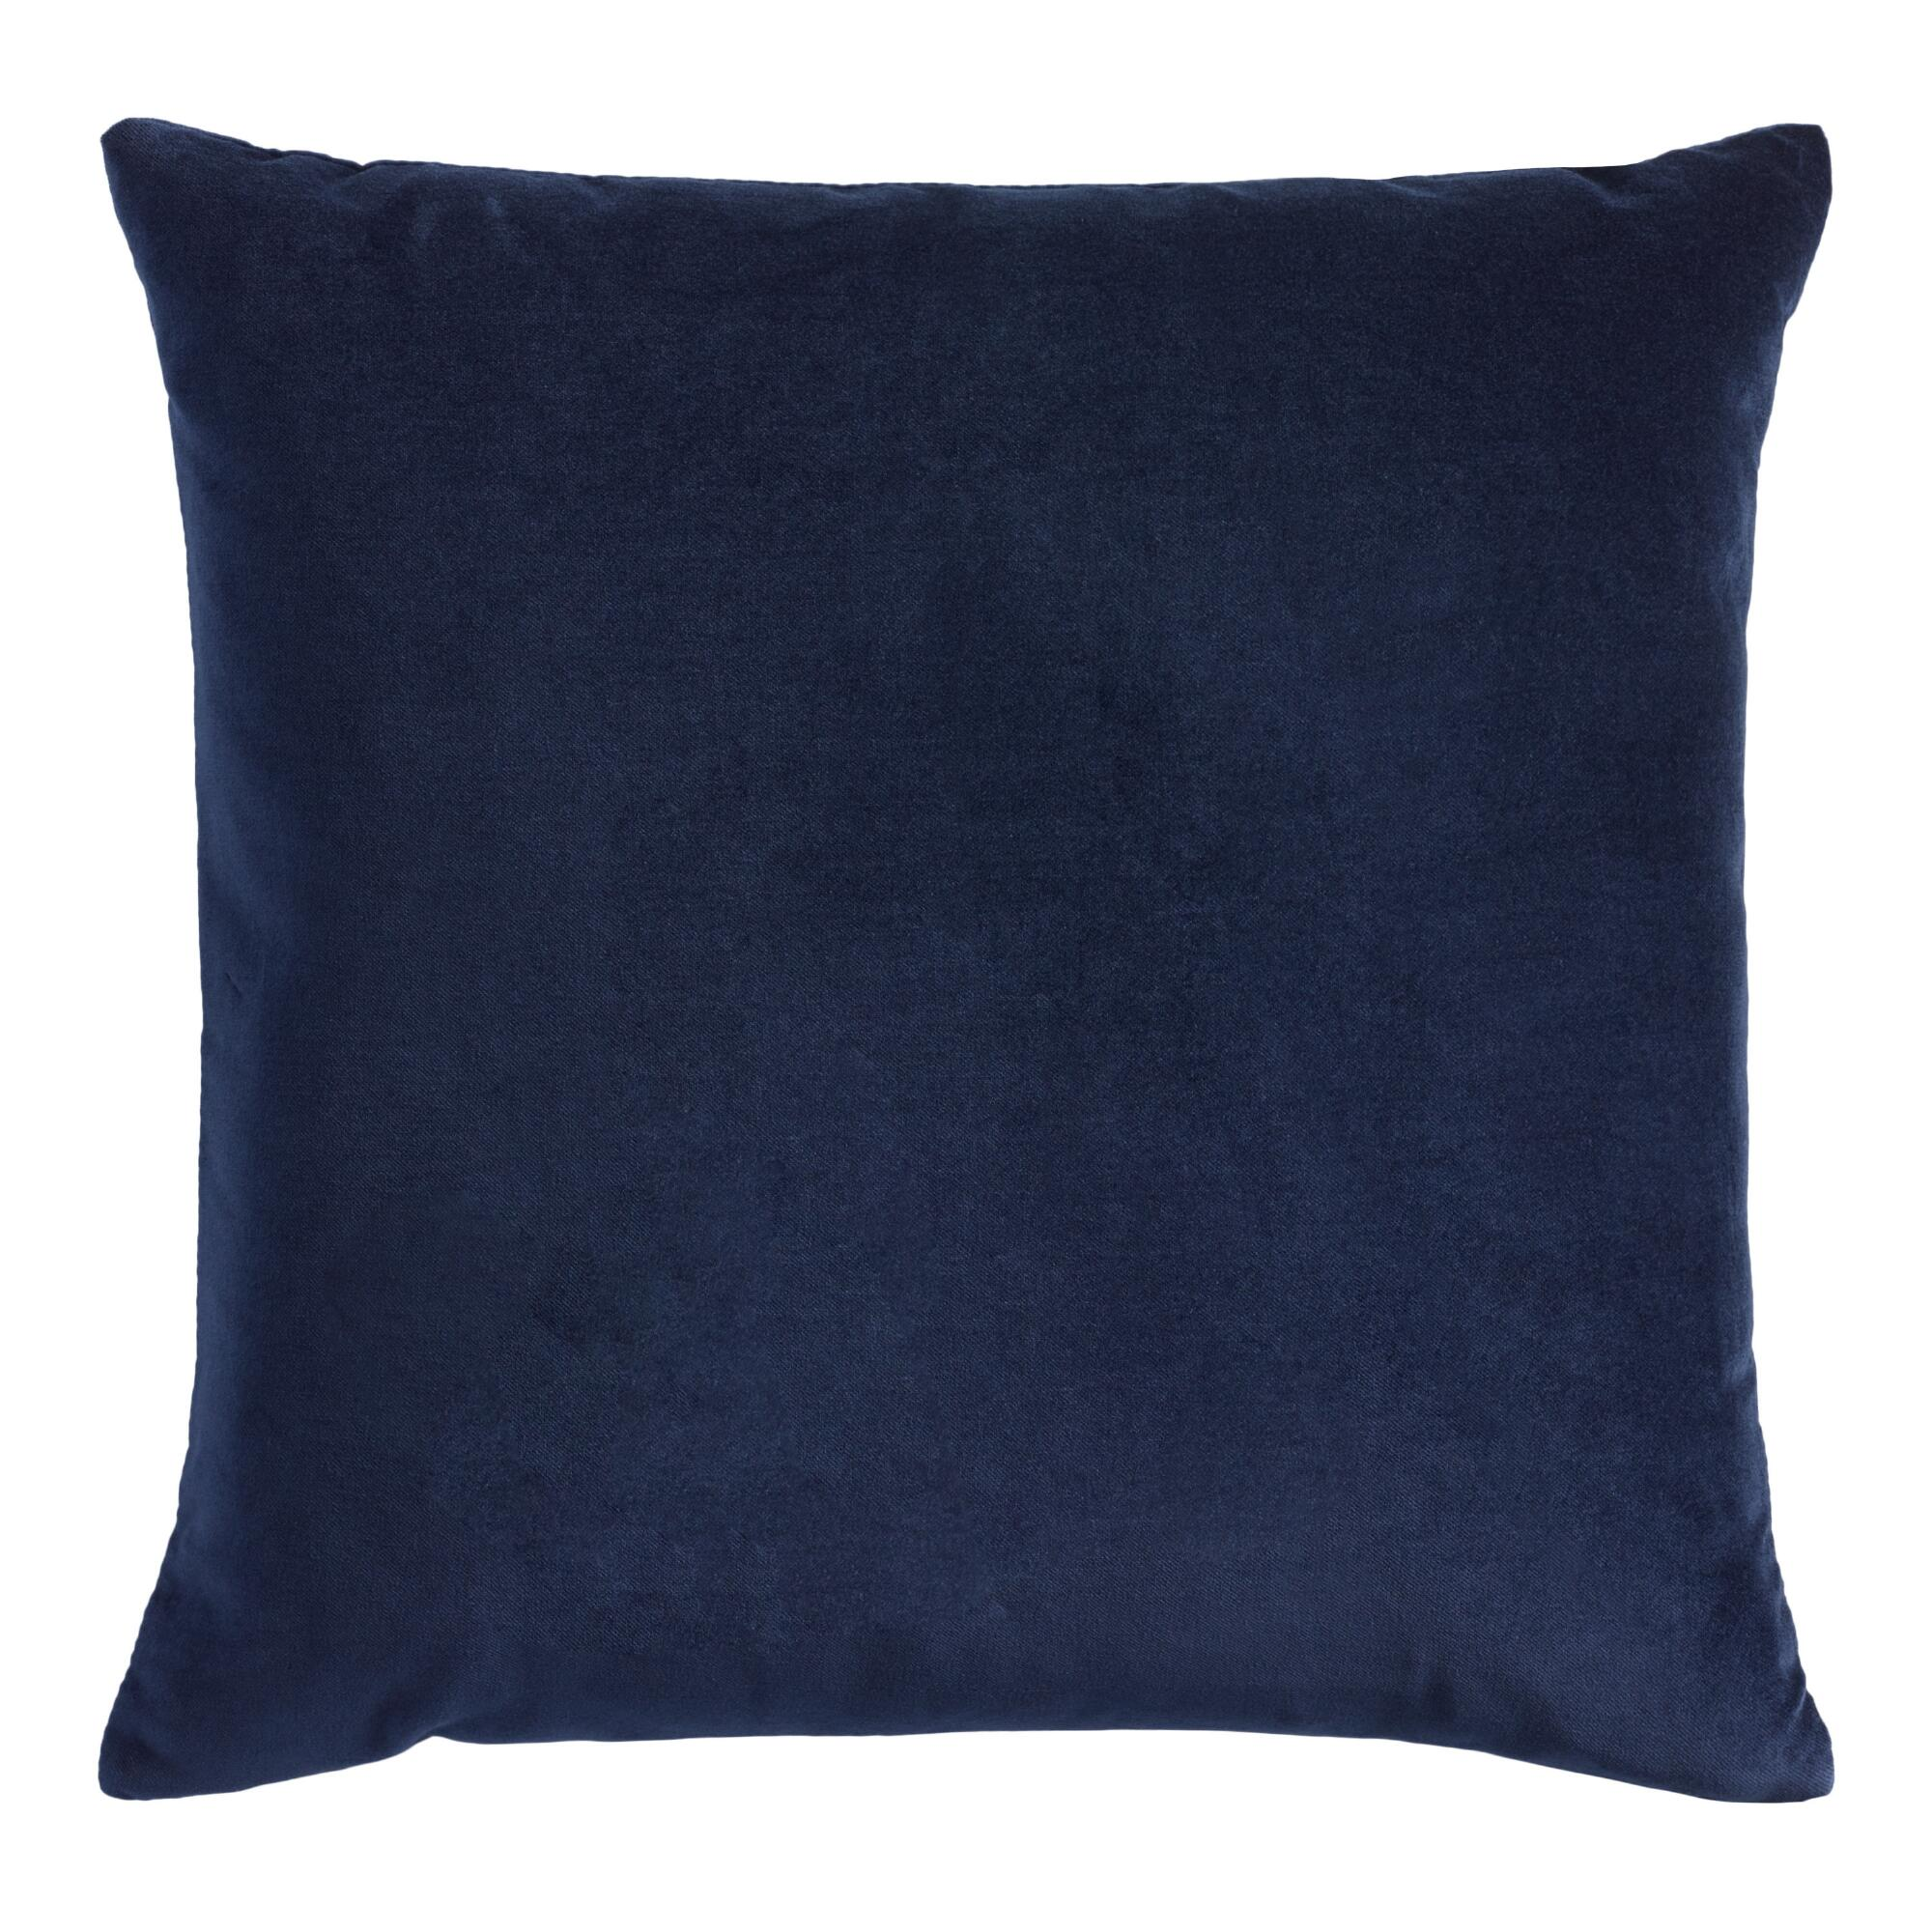 Throw Pillows For Navy Blue Couch : Navy Blue Velvet Throw Pillow World Market